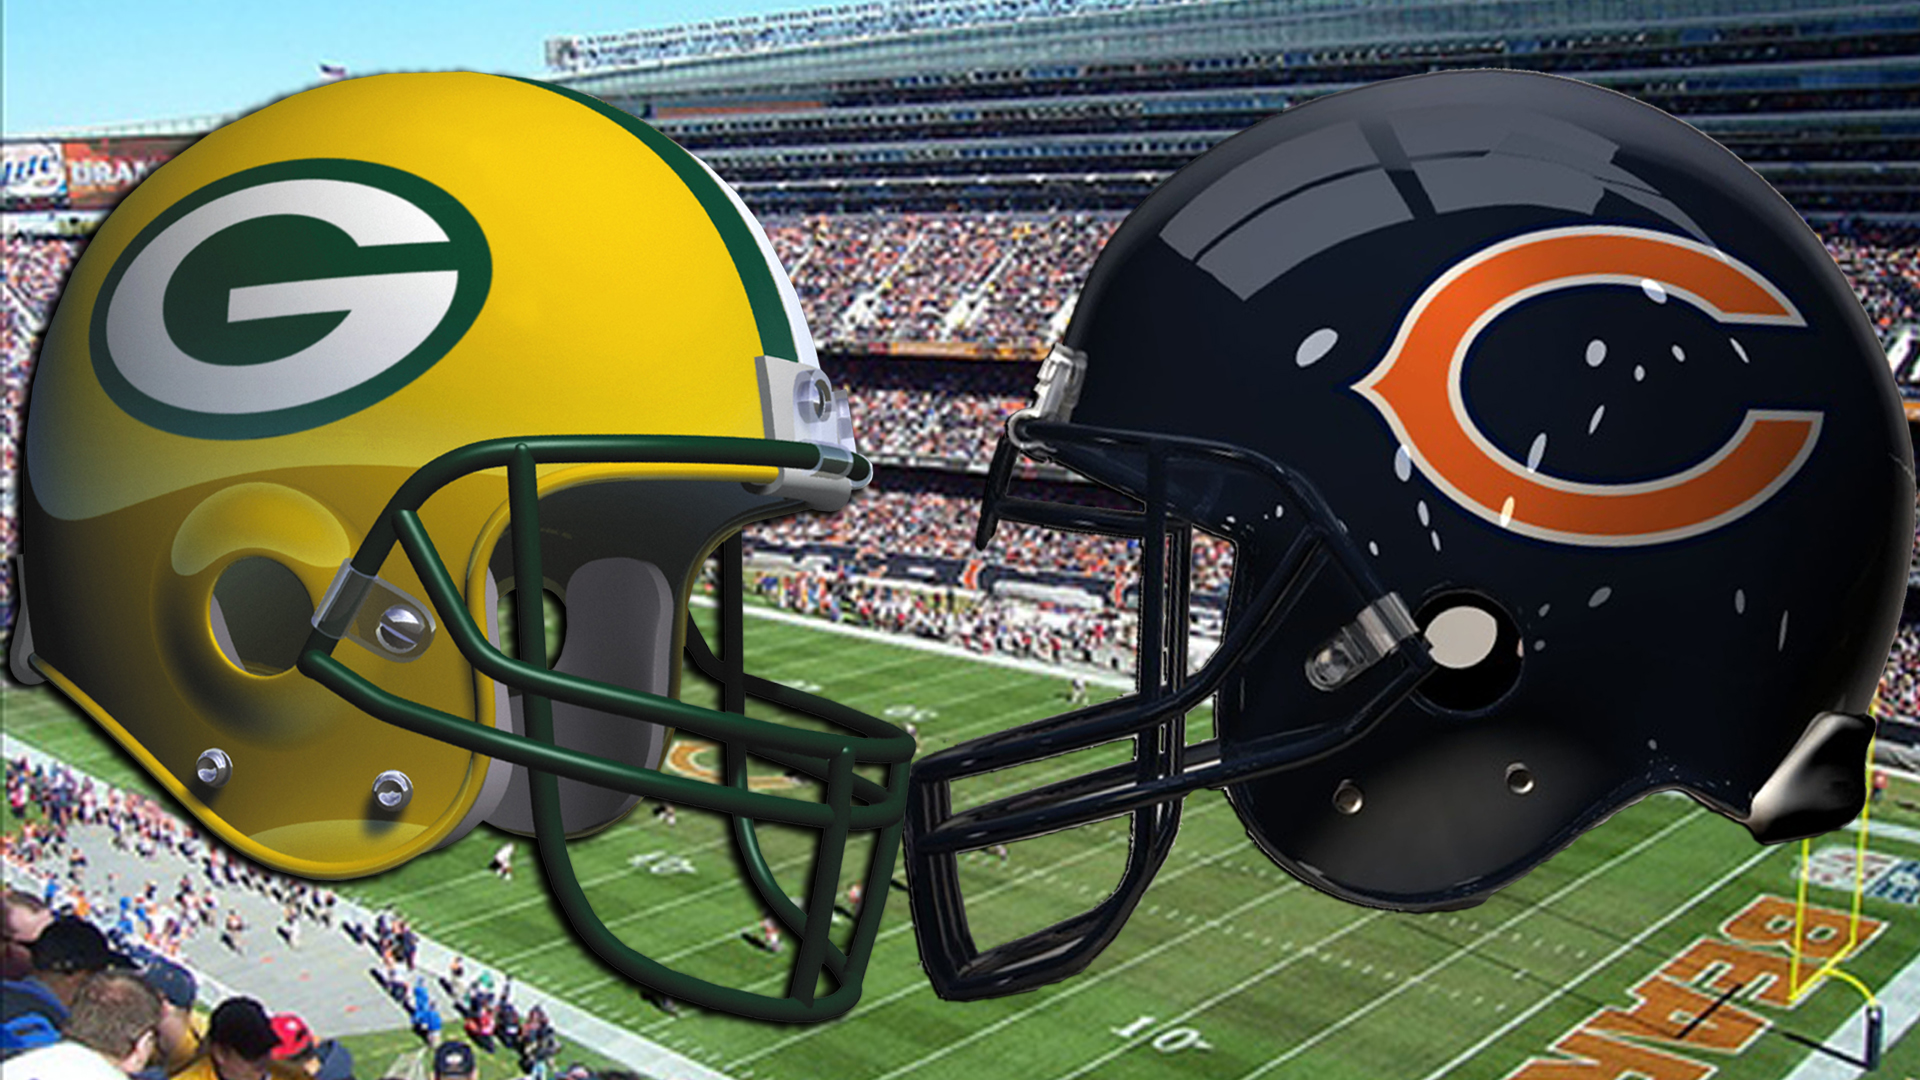 Prepare For The 200th Meeting Between The Packers And Bears